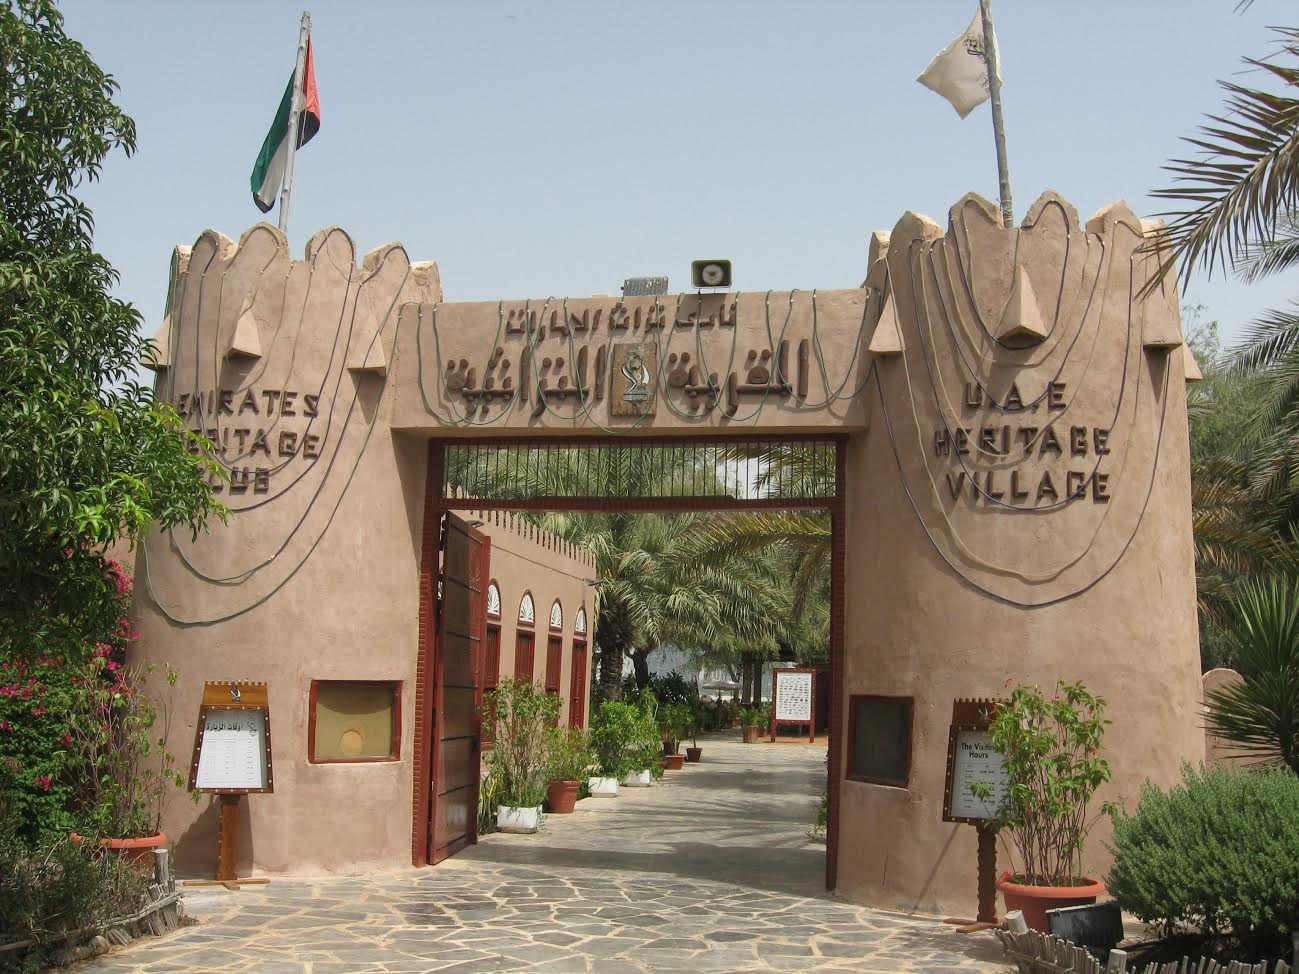 Heritage Village - a comprehensive guide to Abu Dhabi